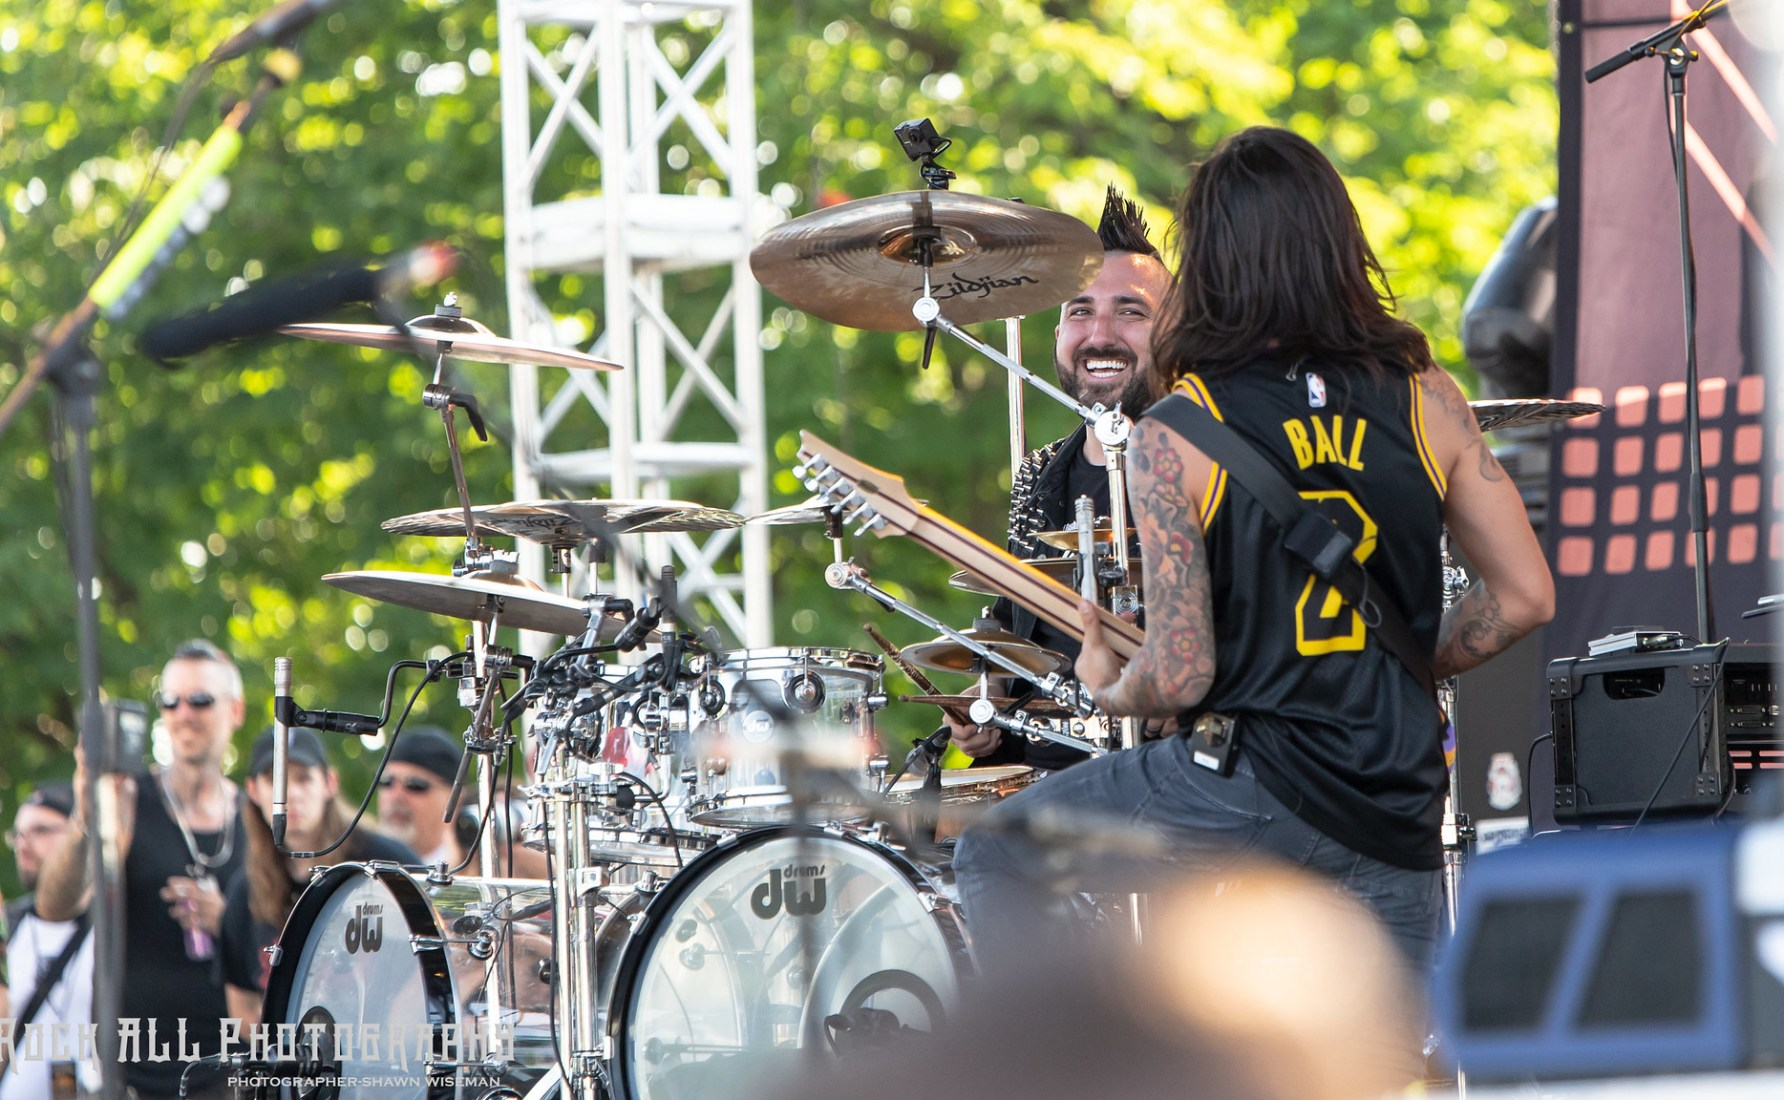 Of Mice and Men - Inkcarceration Festival Day 1 - Mansfield, OH - 7/13/18